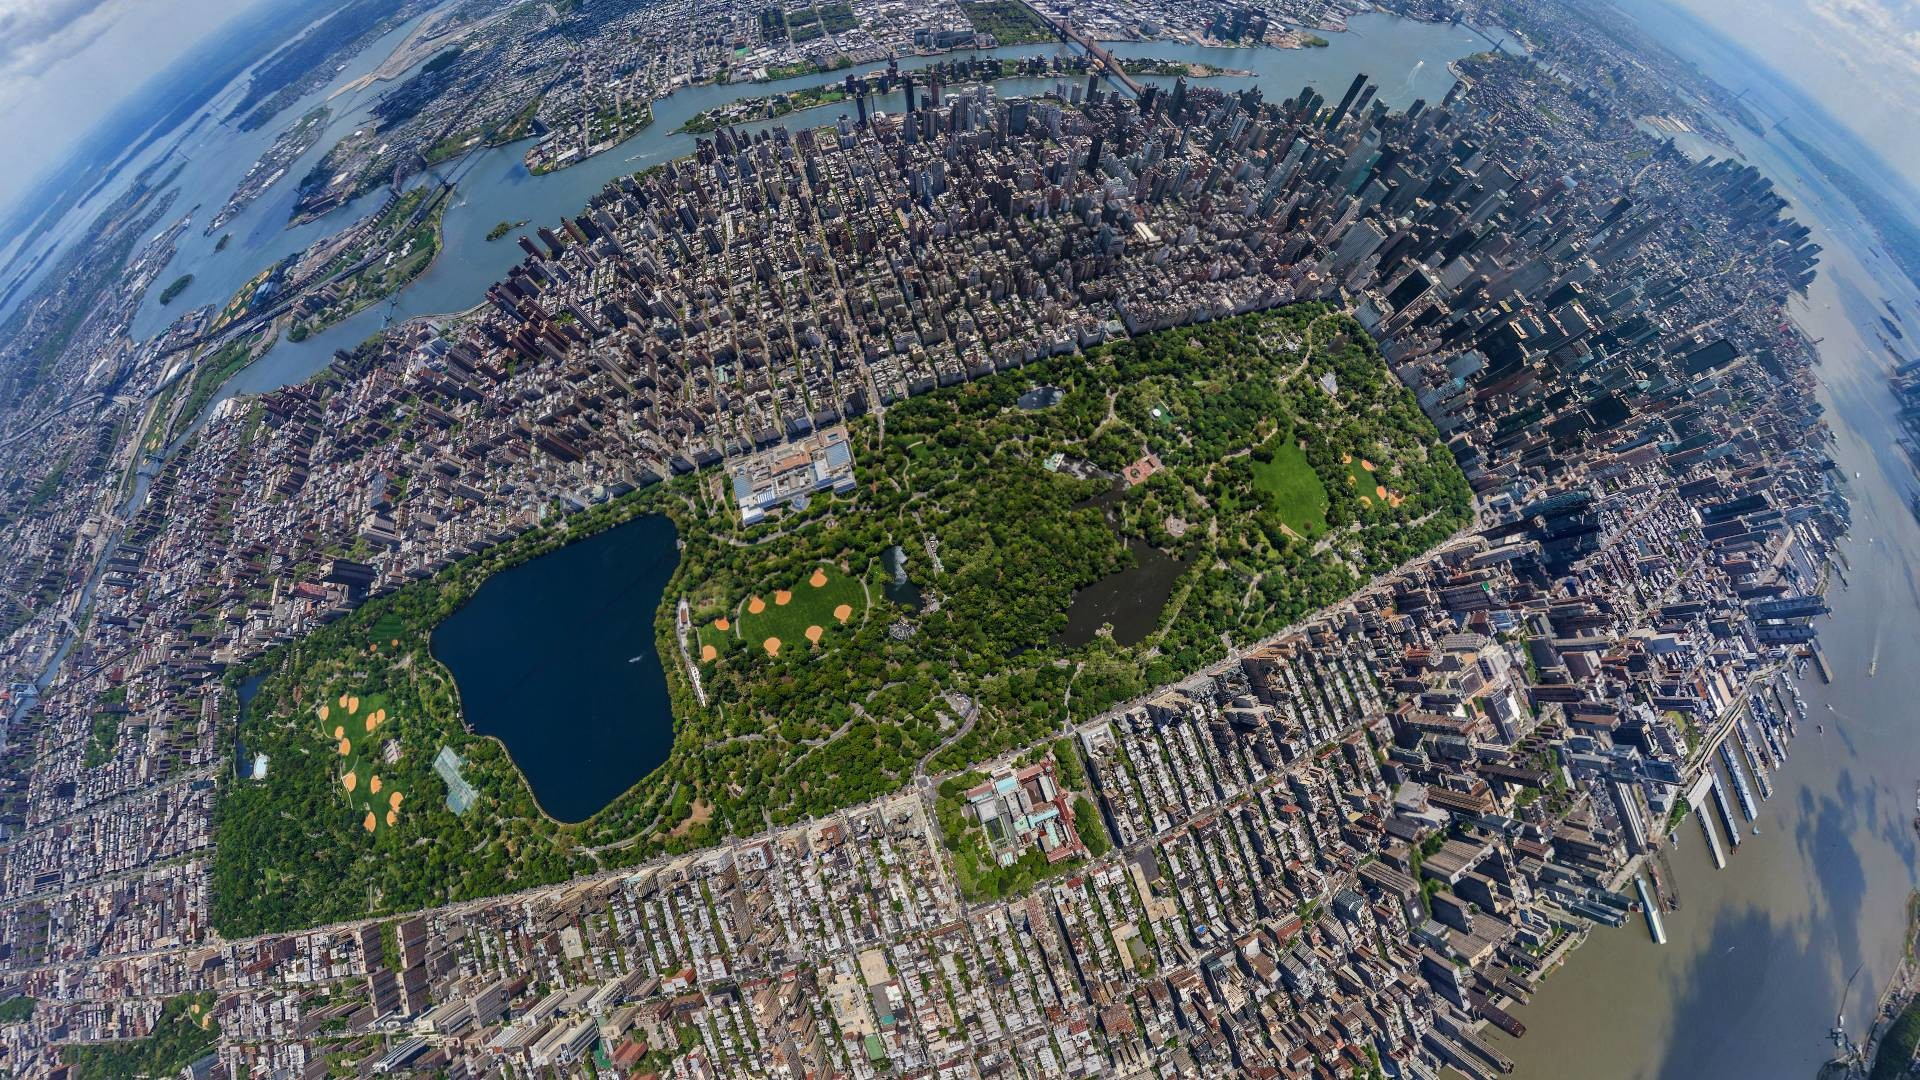 1920x1080 Central Park Aerial View Desktop Wallpaper 49786